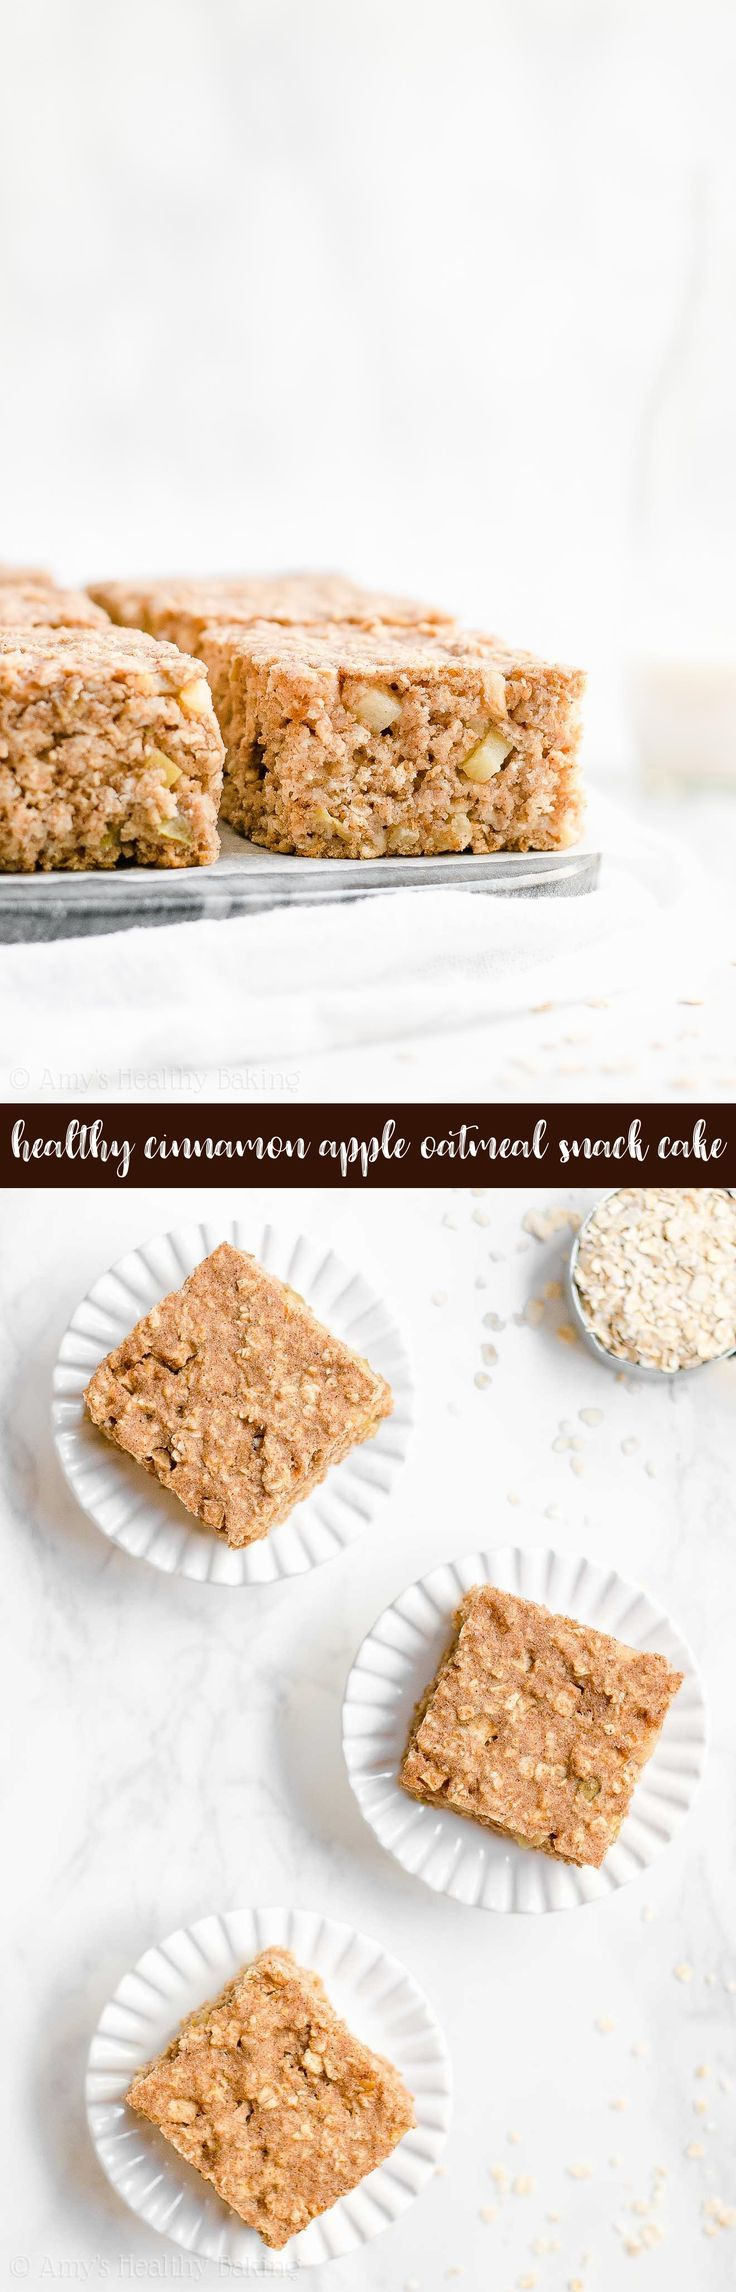 Healthy cinnamon apple oatmeal snack cake only 100